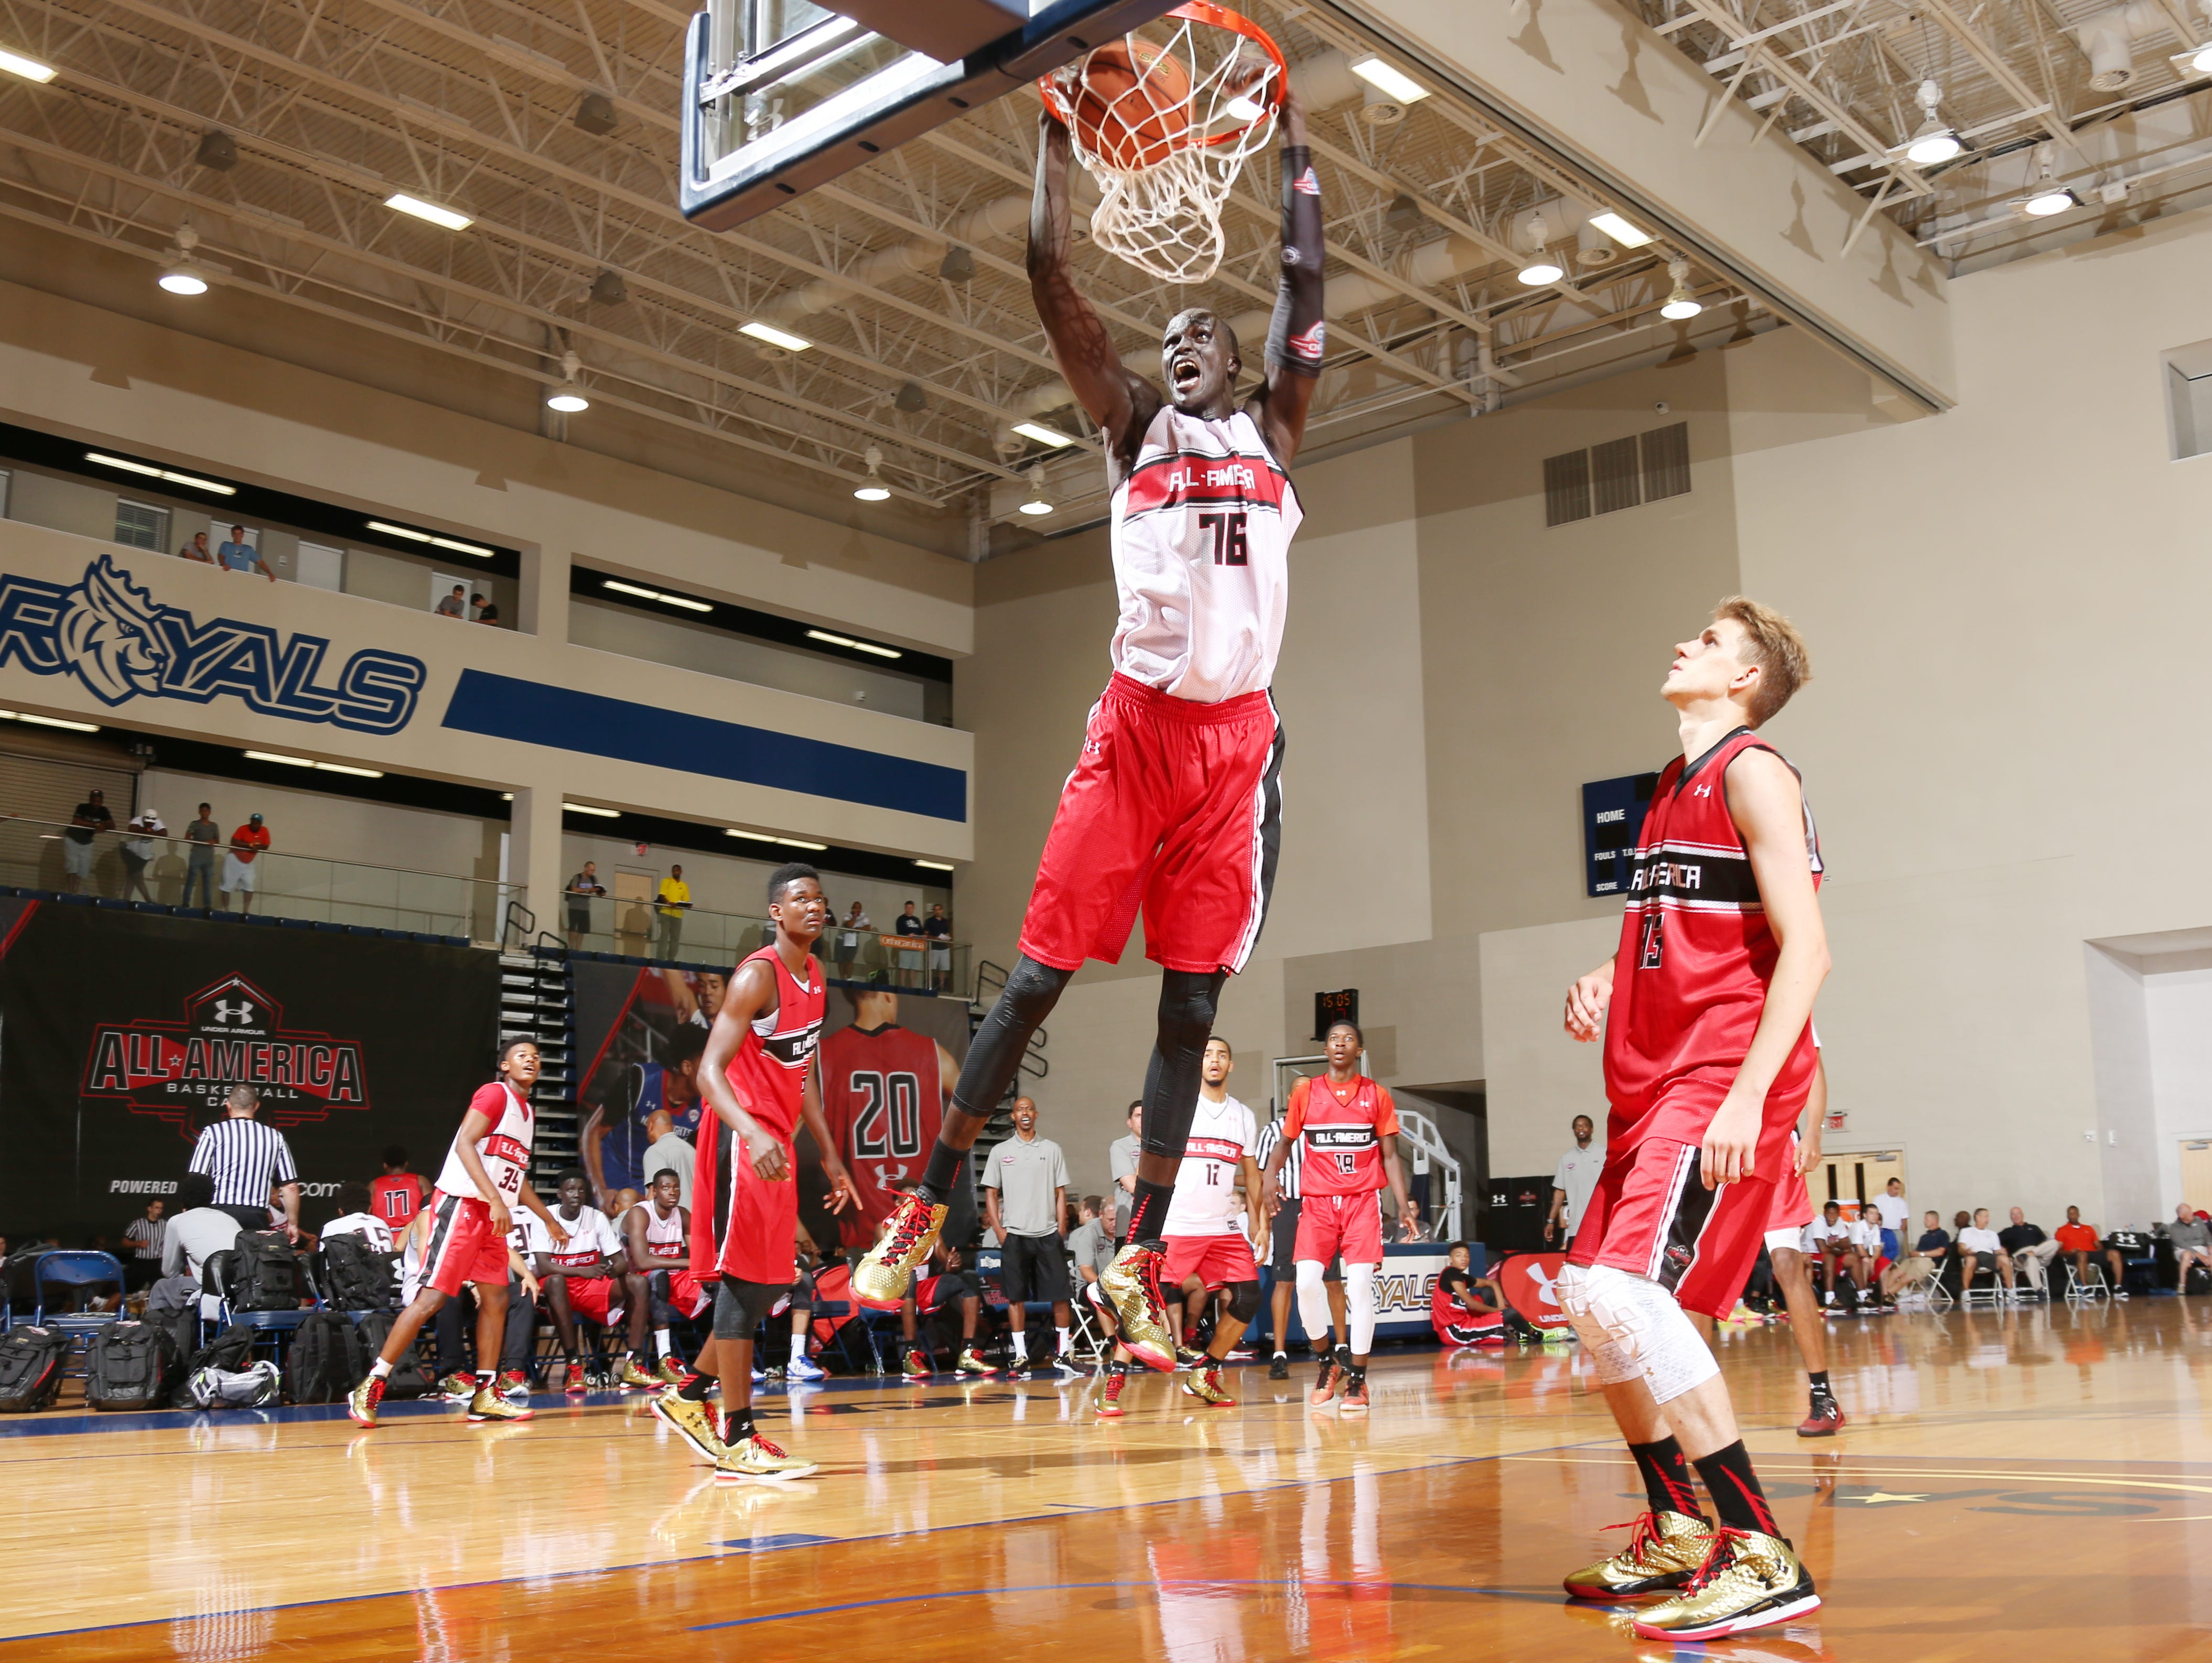 CHARLOTTE, NC - JULY 8: Thon Maker during the 2015 Under Armour All-America Basketball Camp on July 8, 2015 at Queens College in Charlotte, NC. (Photo by Ned Dishman/Under Armour)